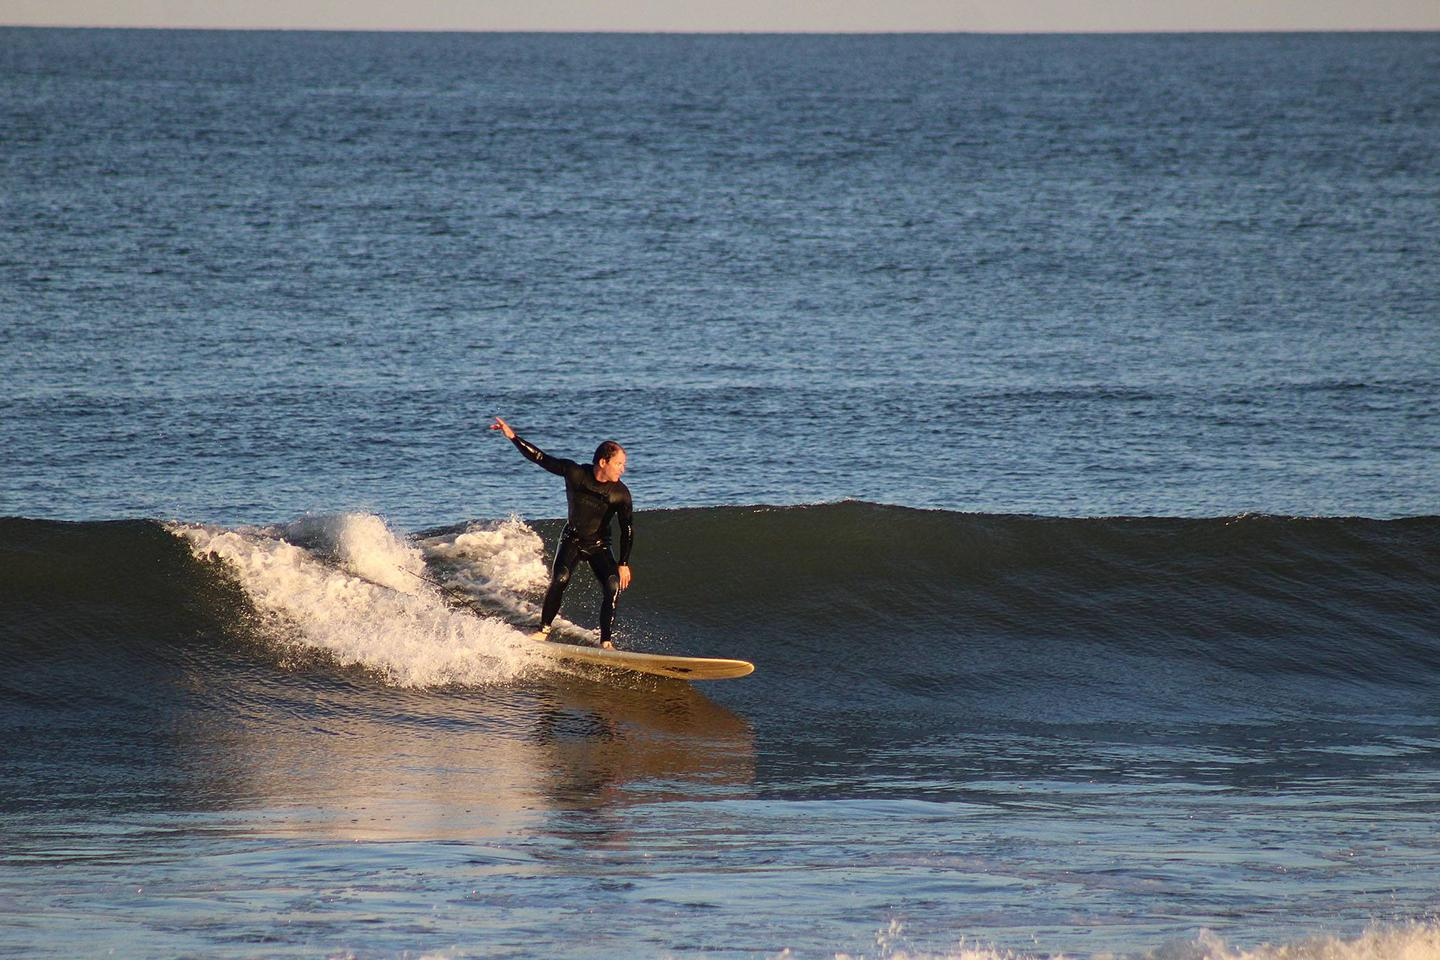 Male surfing a wave on a surfboard at Beach Area CSurfing at Beach C